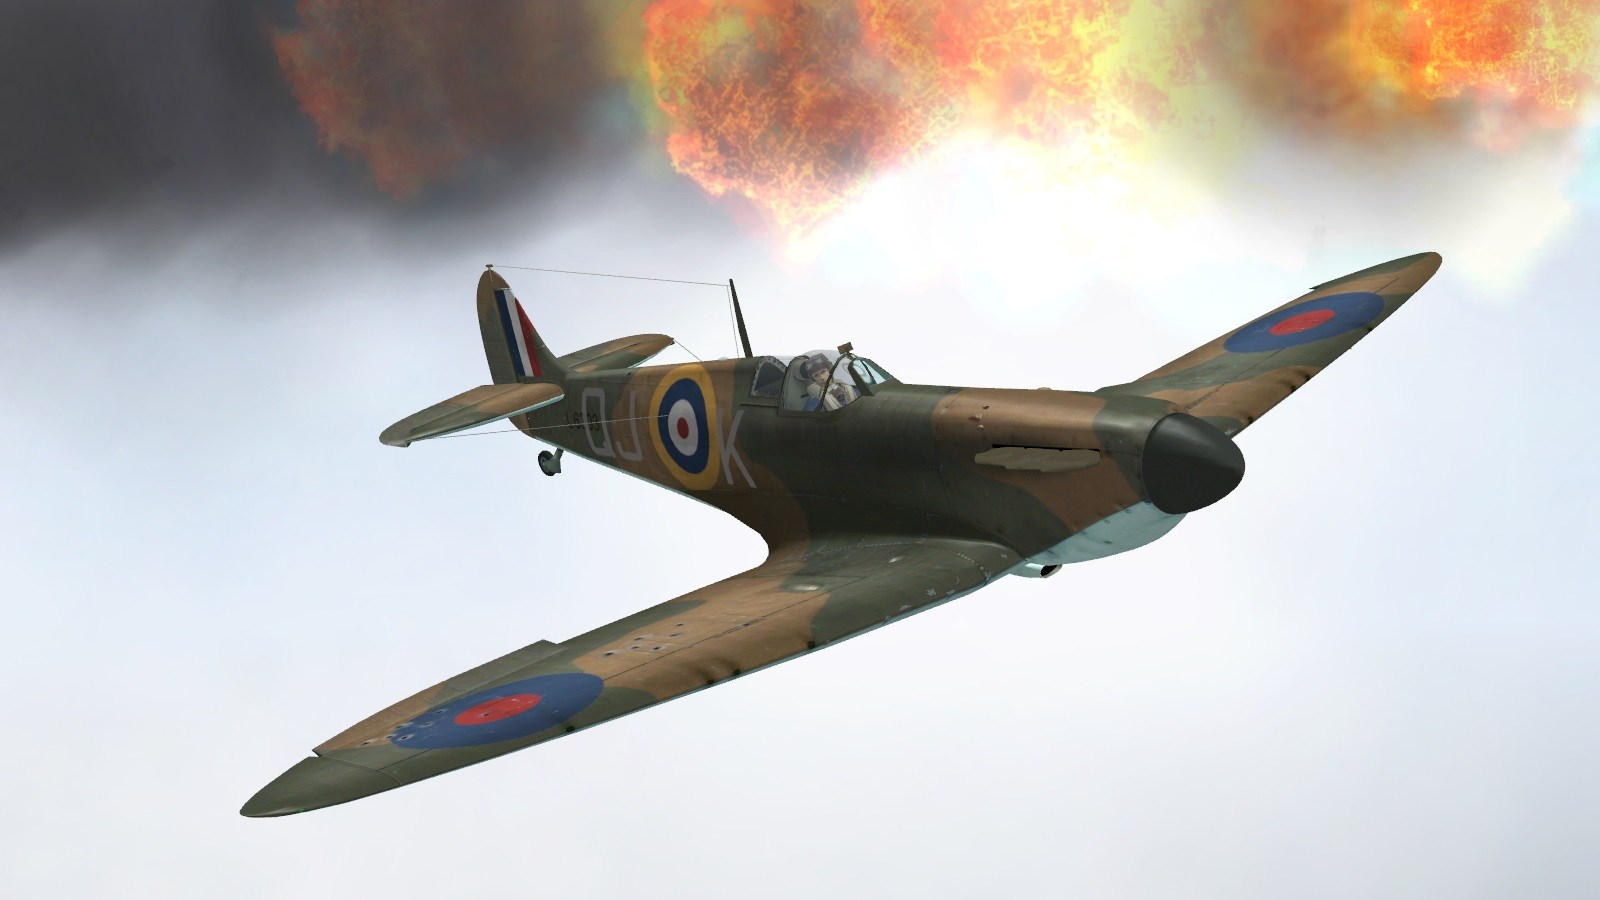 Battle of Britain II - 23 July 1940 - 92 Squadron intercepts Hostile 202